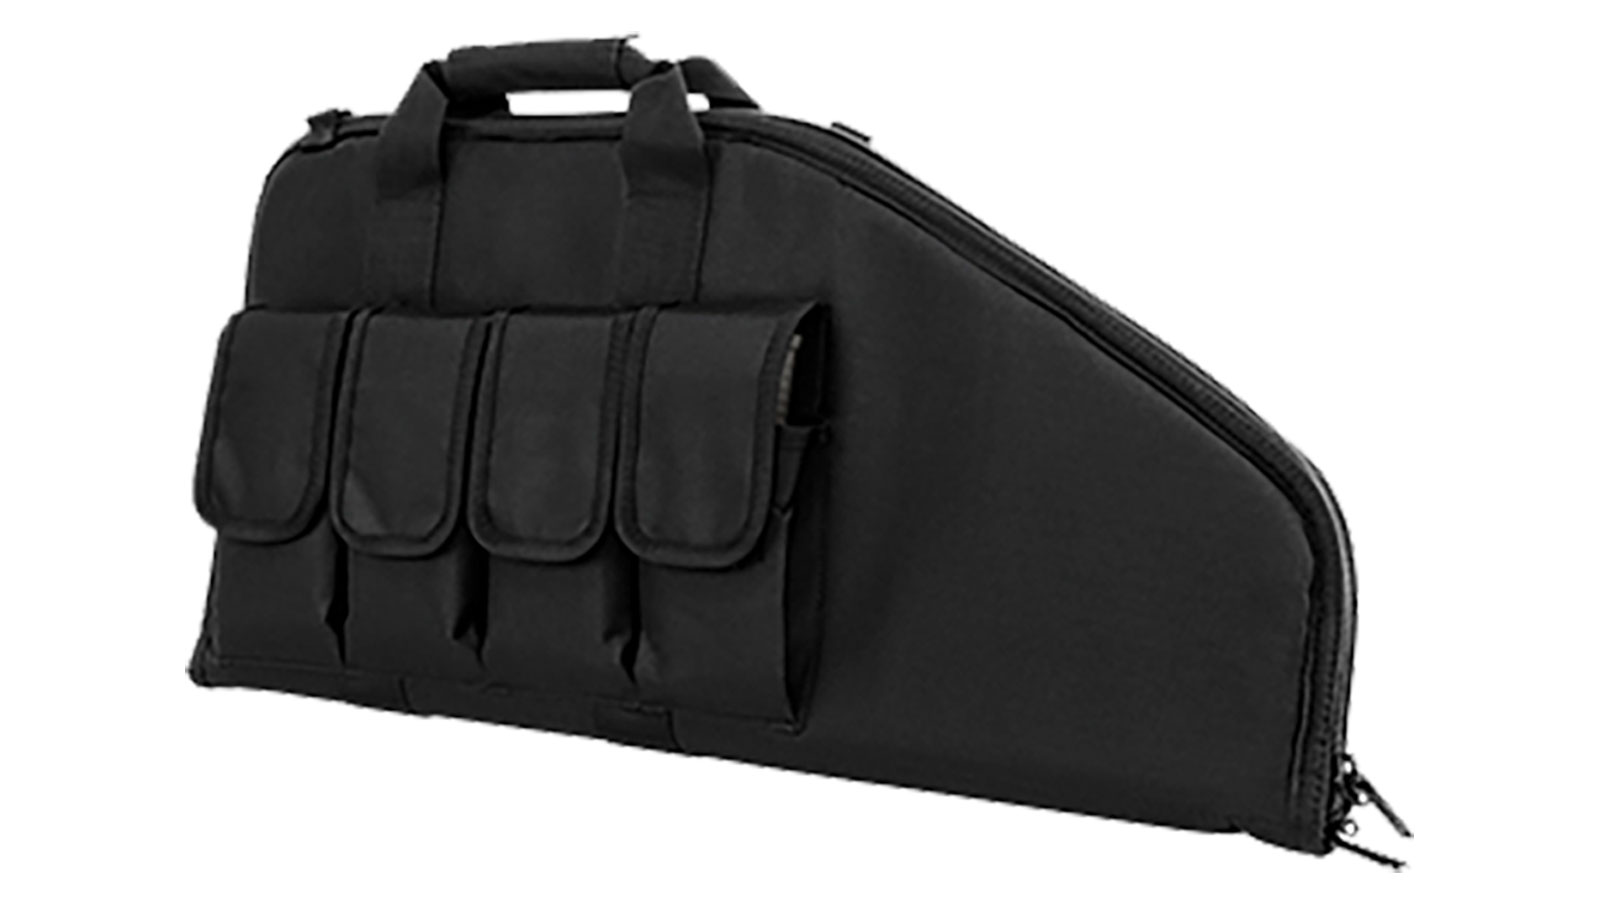 NC Star 28&quot Tactical Subgun AR and AK Pistol Case Black